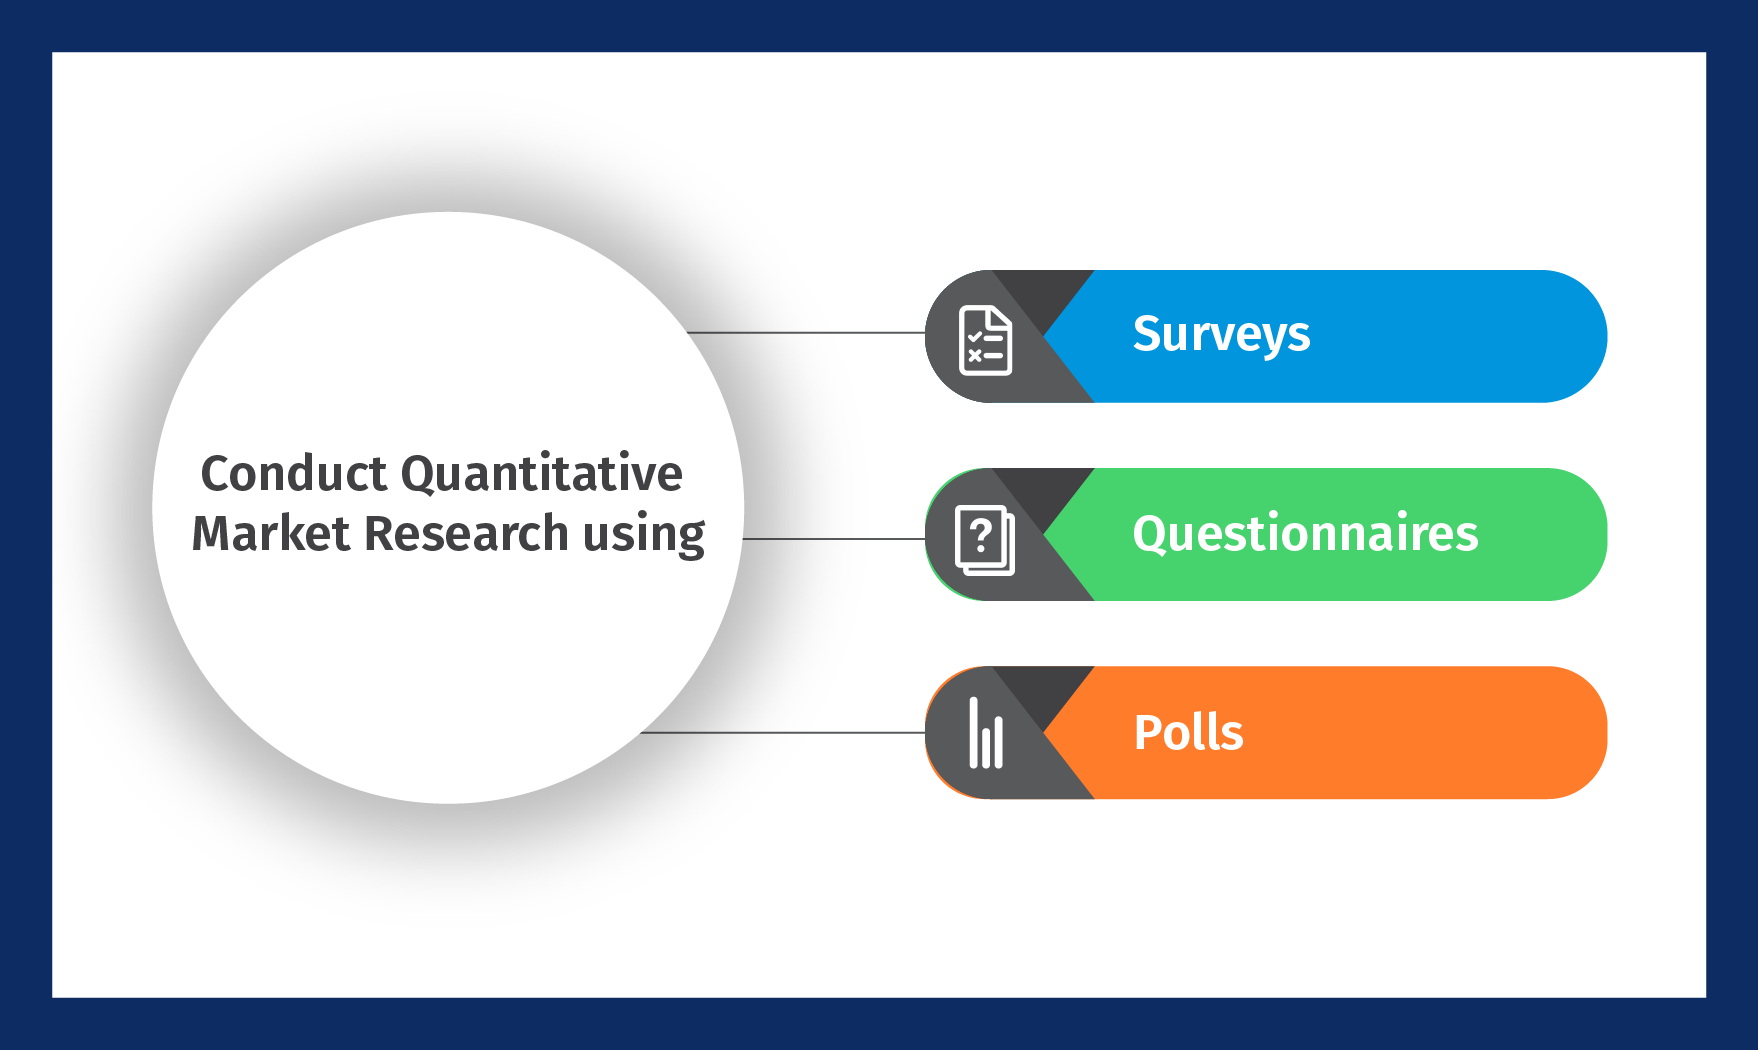 Conduct quantitative market research